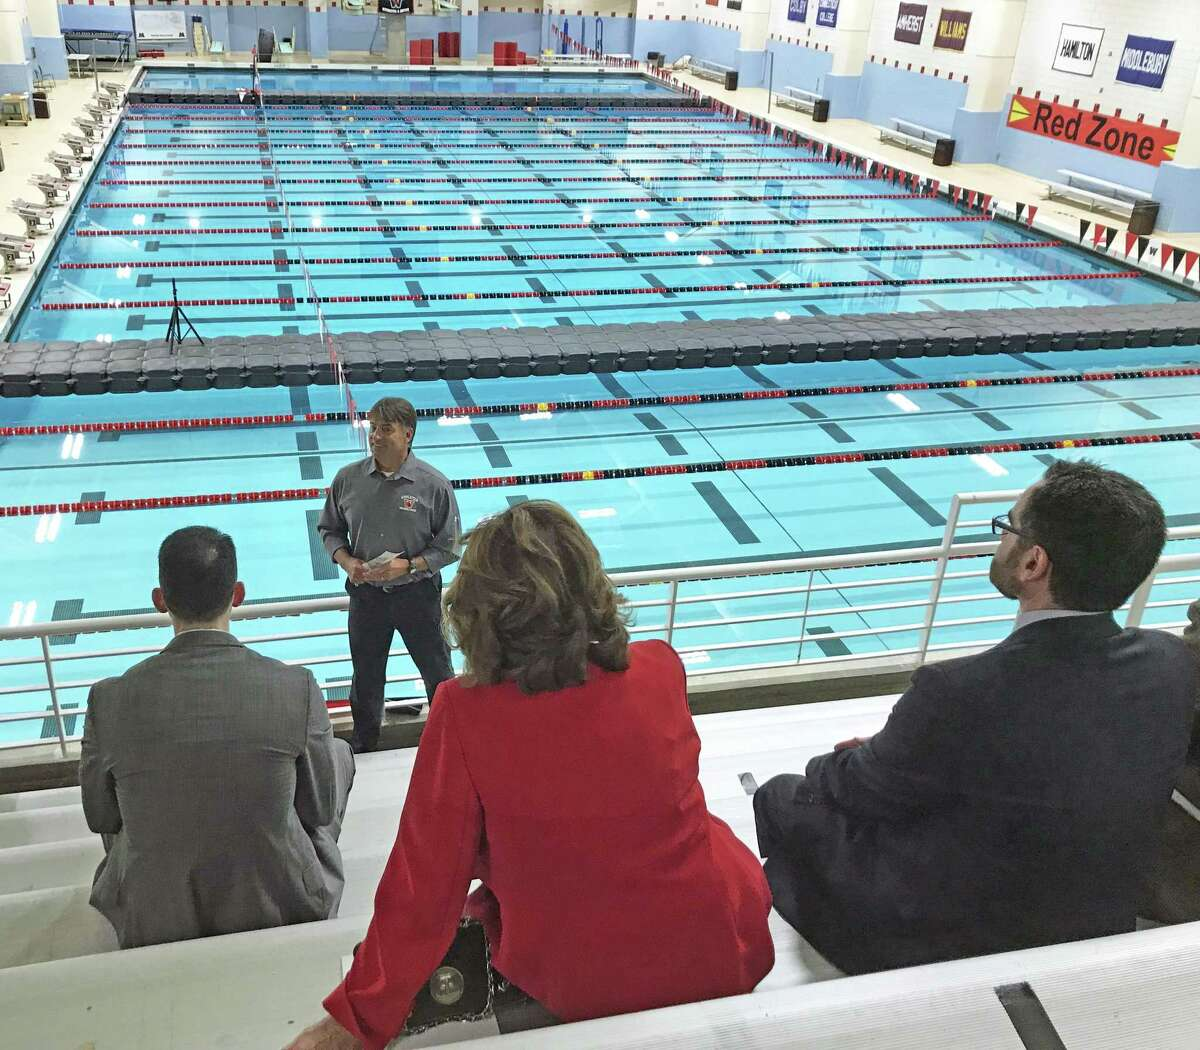 Wesleyan University and Eversource have partnered to achieve carbon neutrality by 2050. The college hosted a tour Tuesday afternoon, showcasing recent energy-efficient upgrades at the Freeman Athletic Center in Middletown.